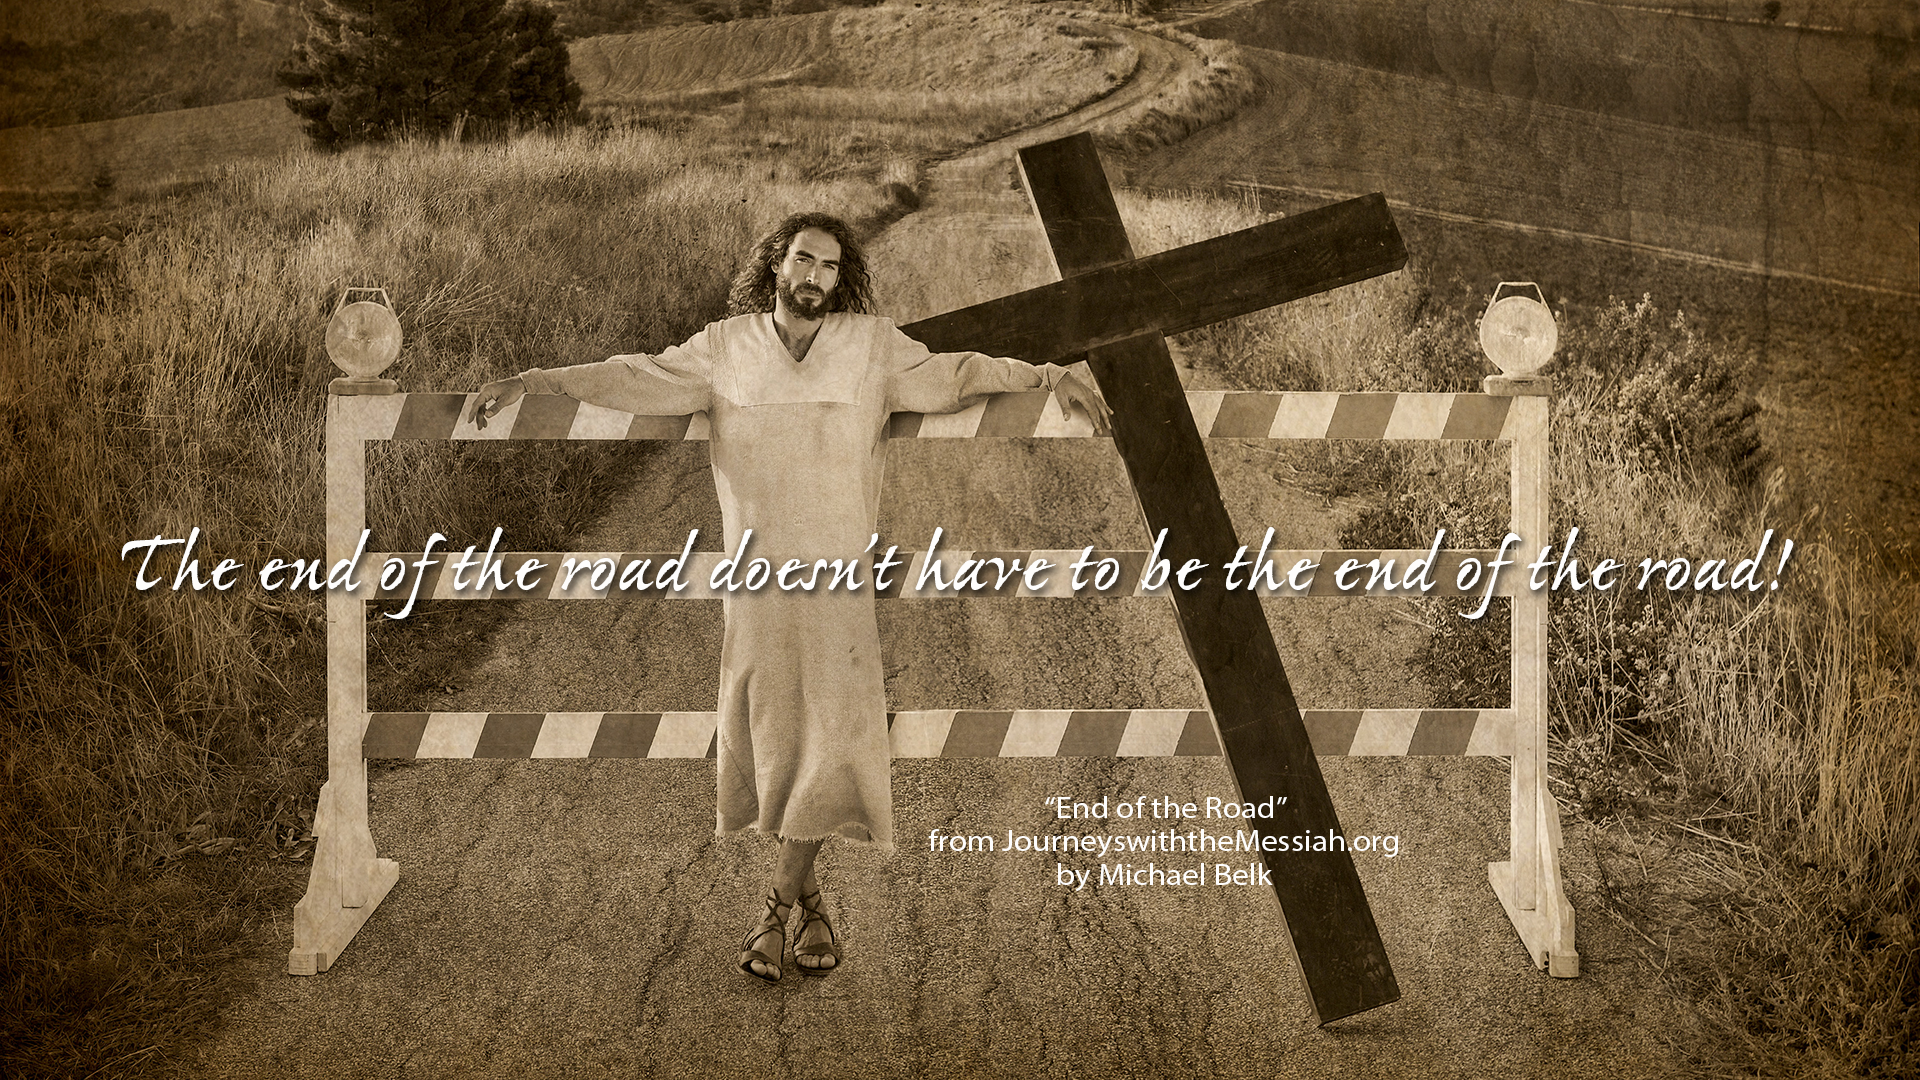 End of the Road Christian Images